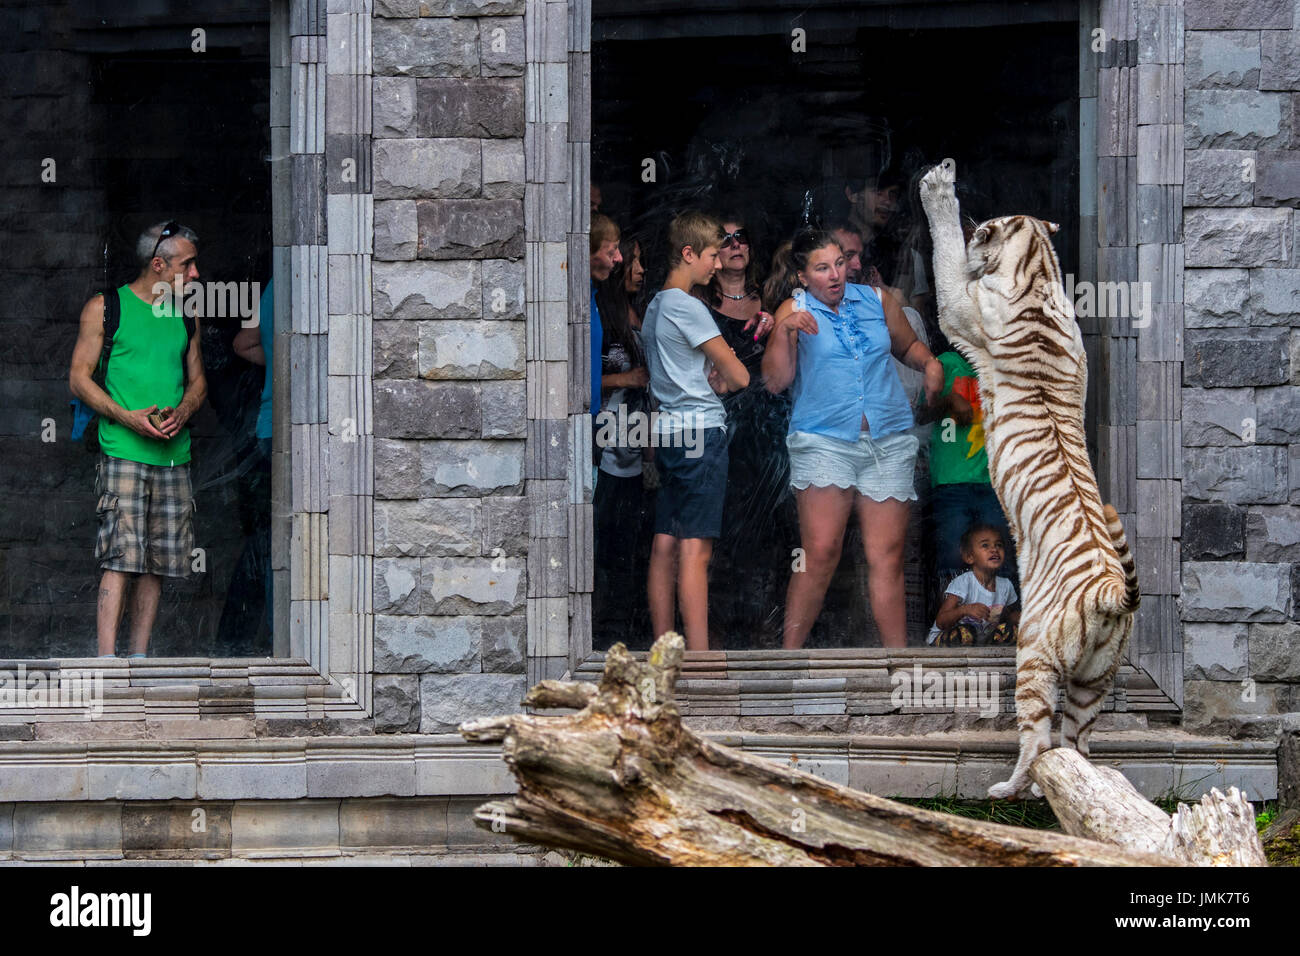 white-tiger-bleached-tiger-panthera-tigris-trying-to-attack-frightened-JMK7T6.jpg